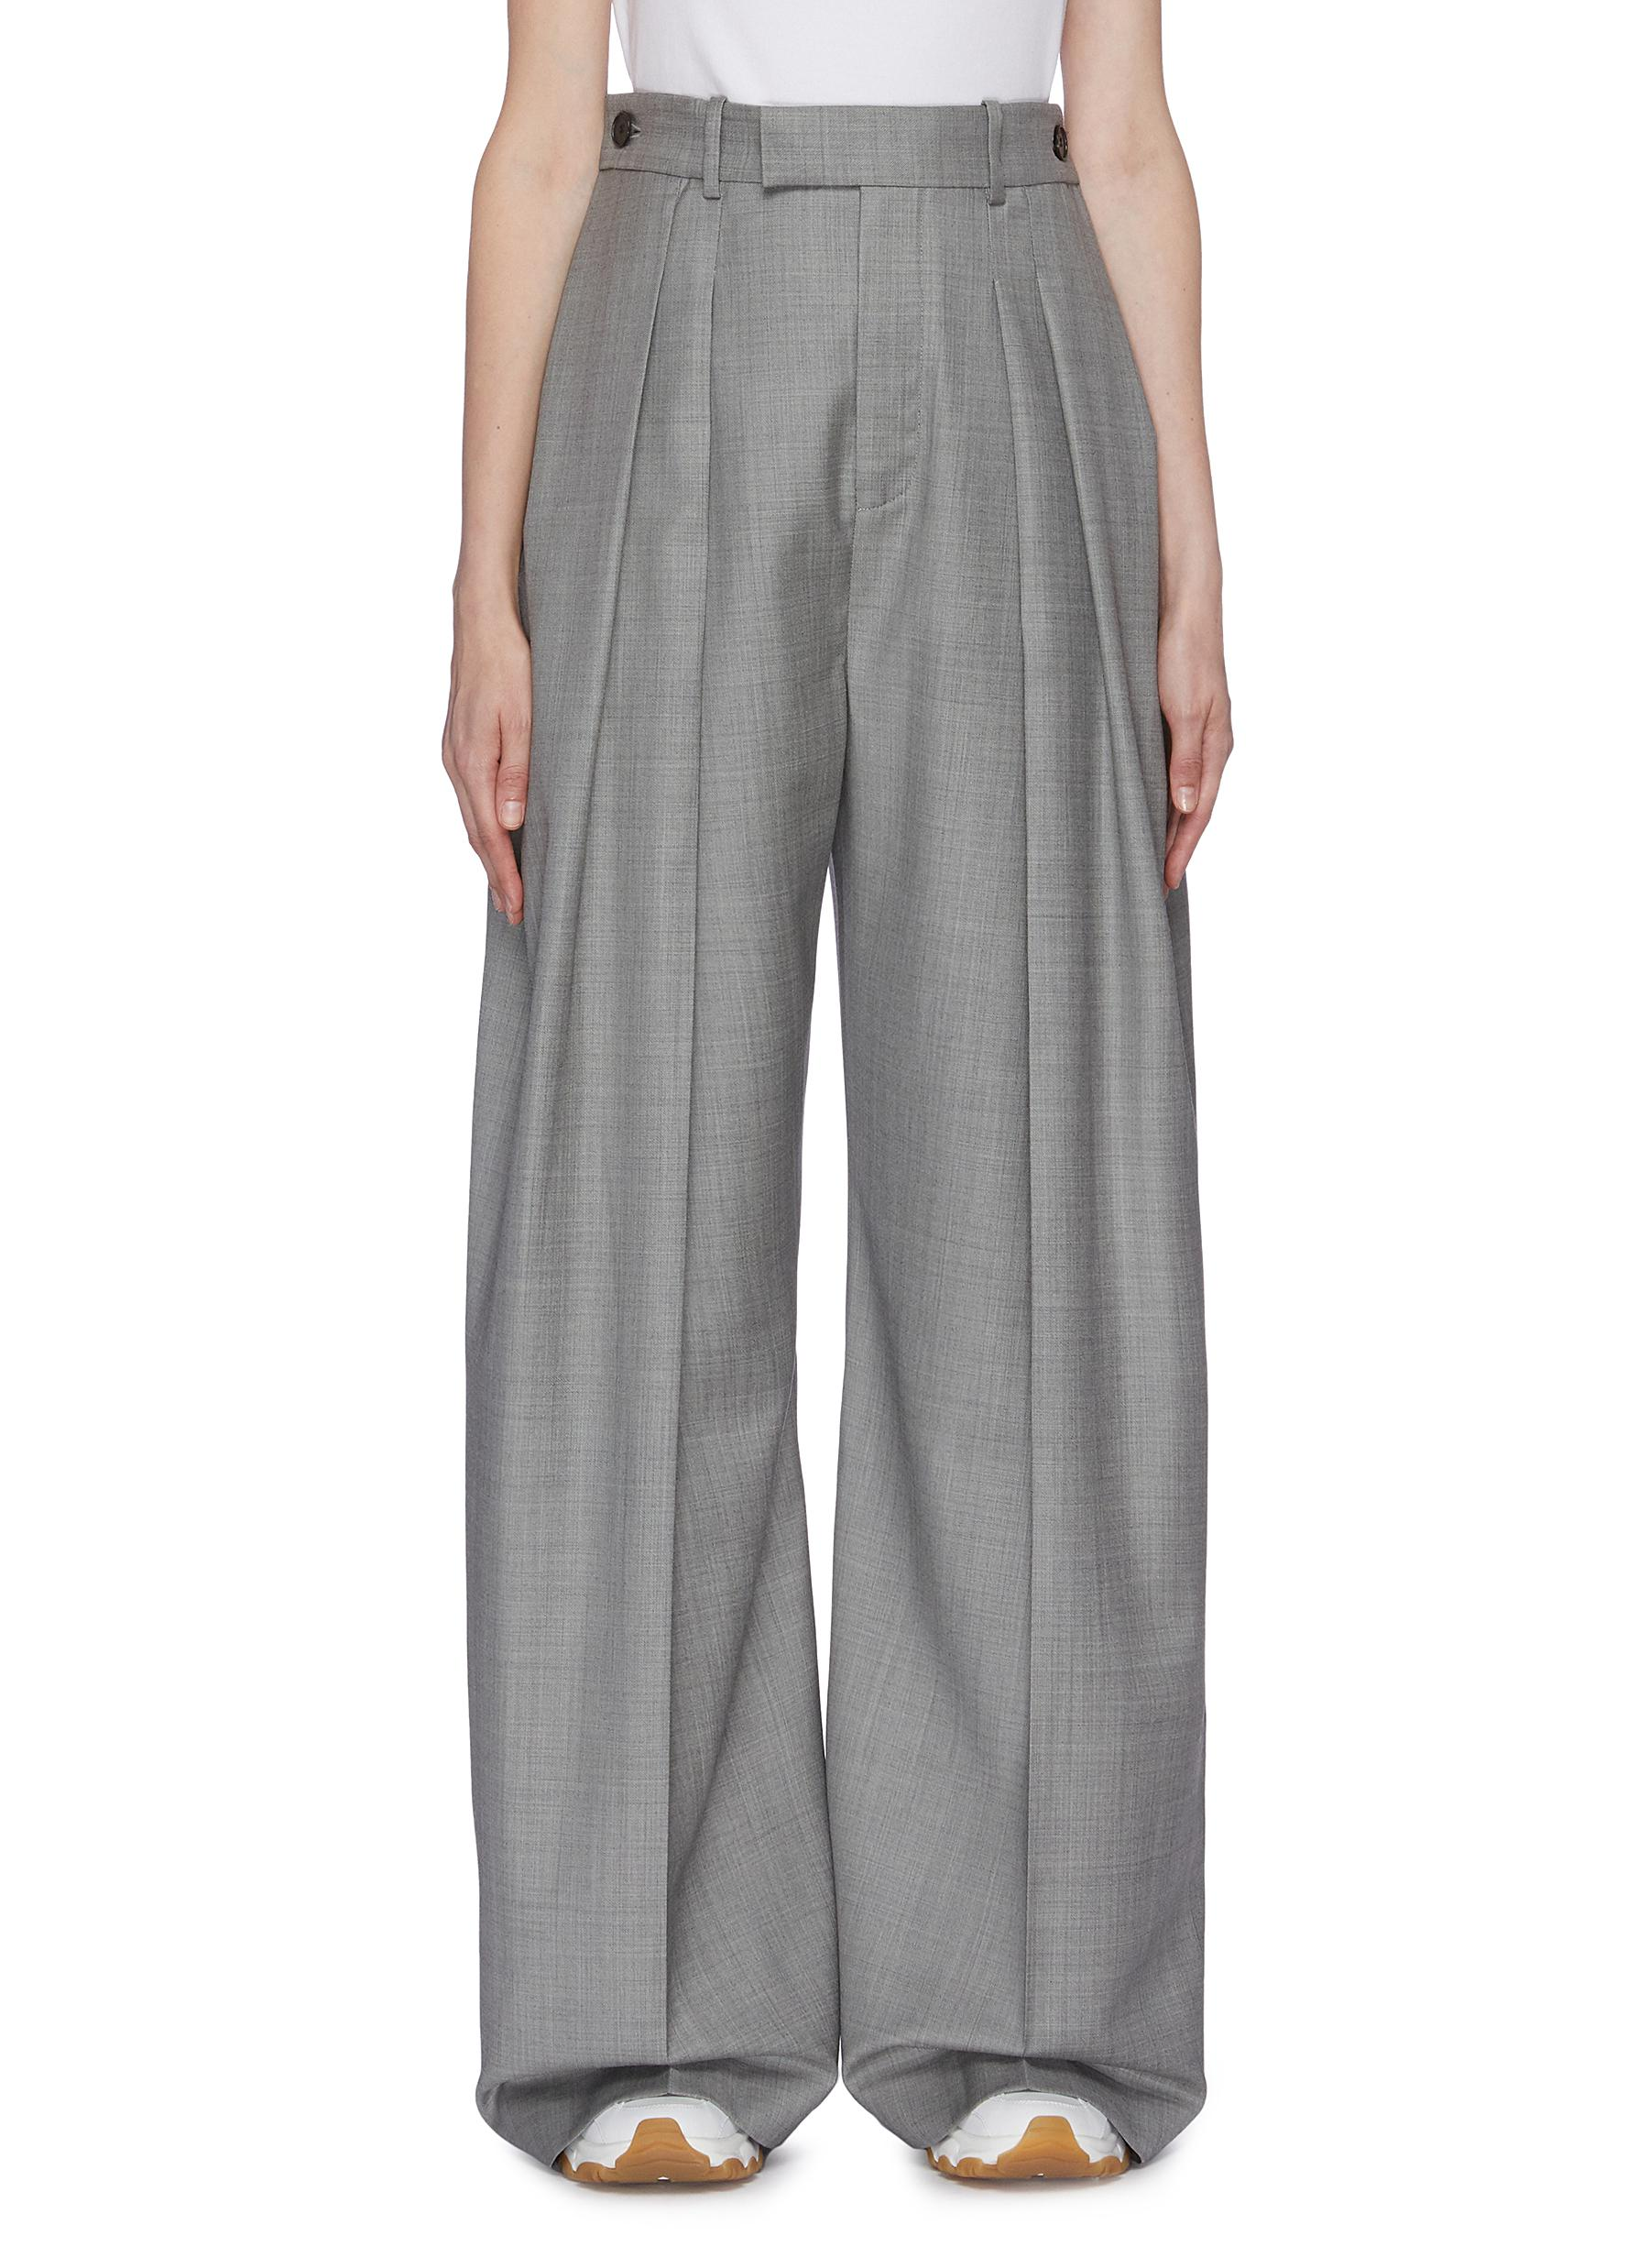 Pleated wide leg suiting pants by Jw Anderson